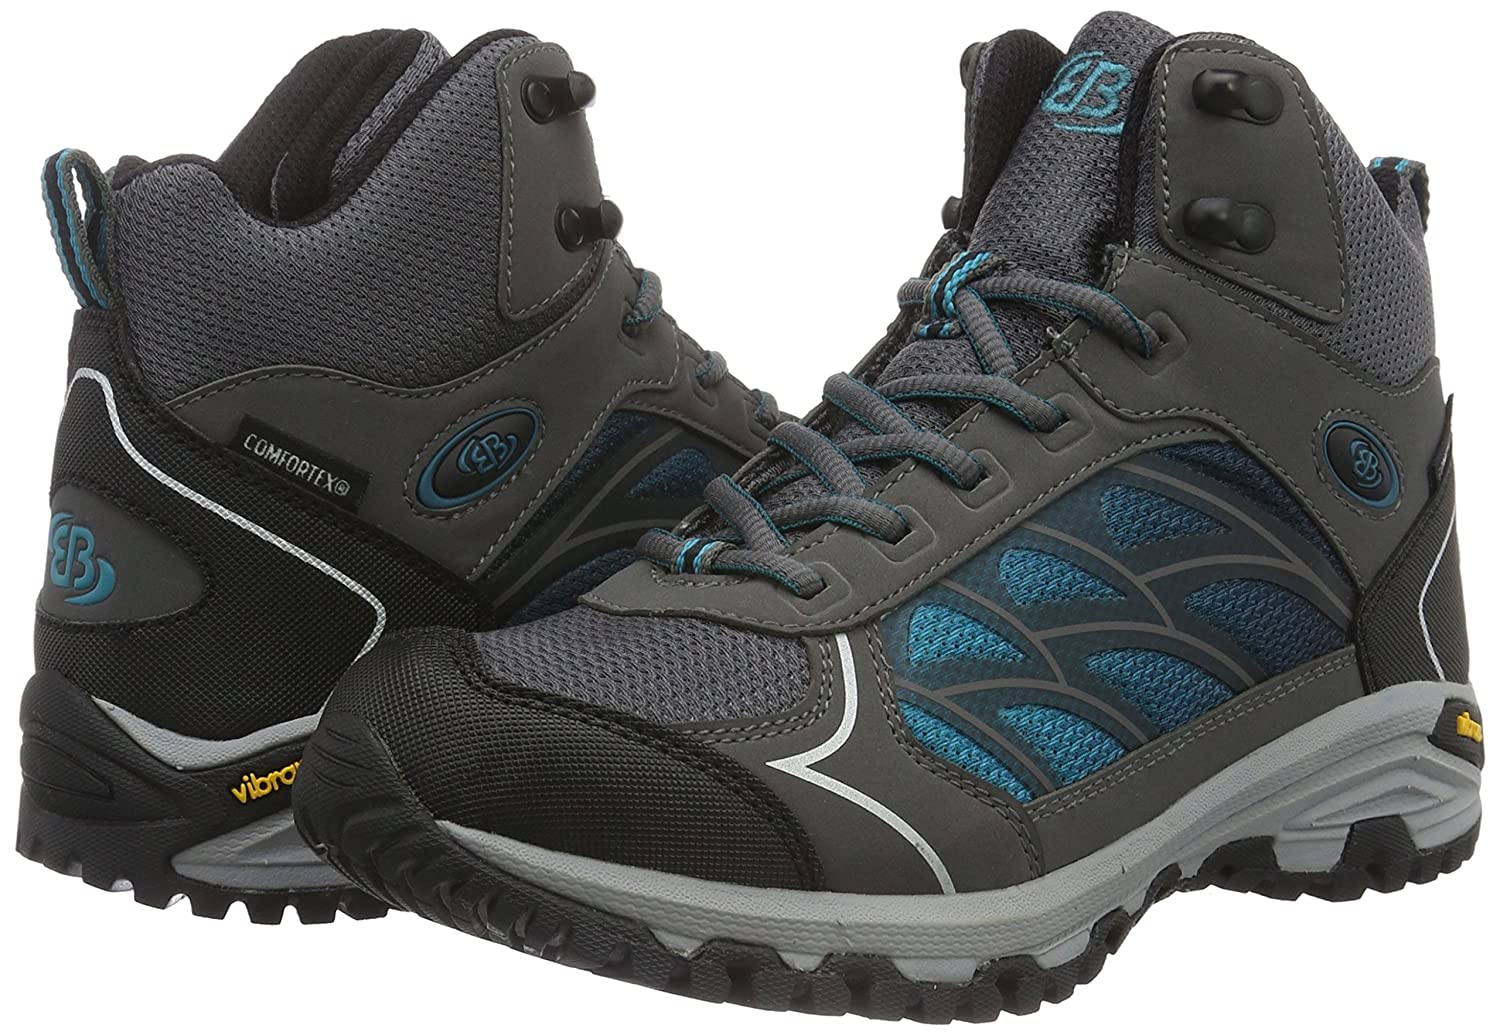 Bruetting Damen Damen Bruetting Valley High Trekking-& Wanderstiefel 36617c